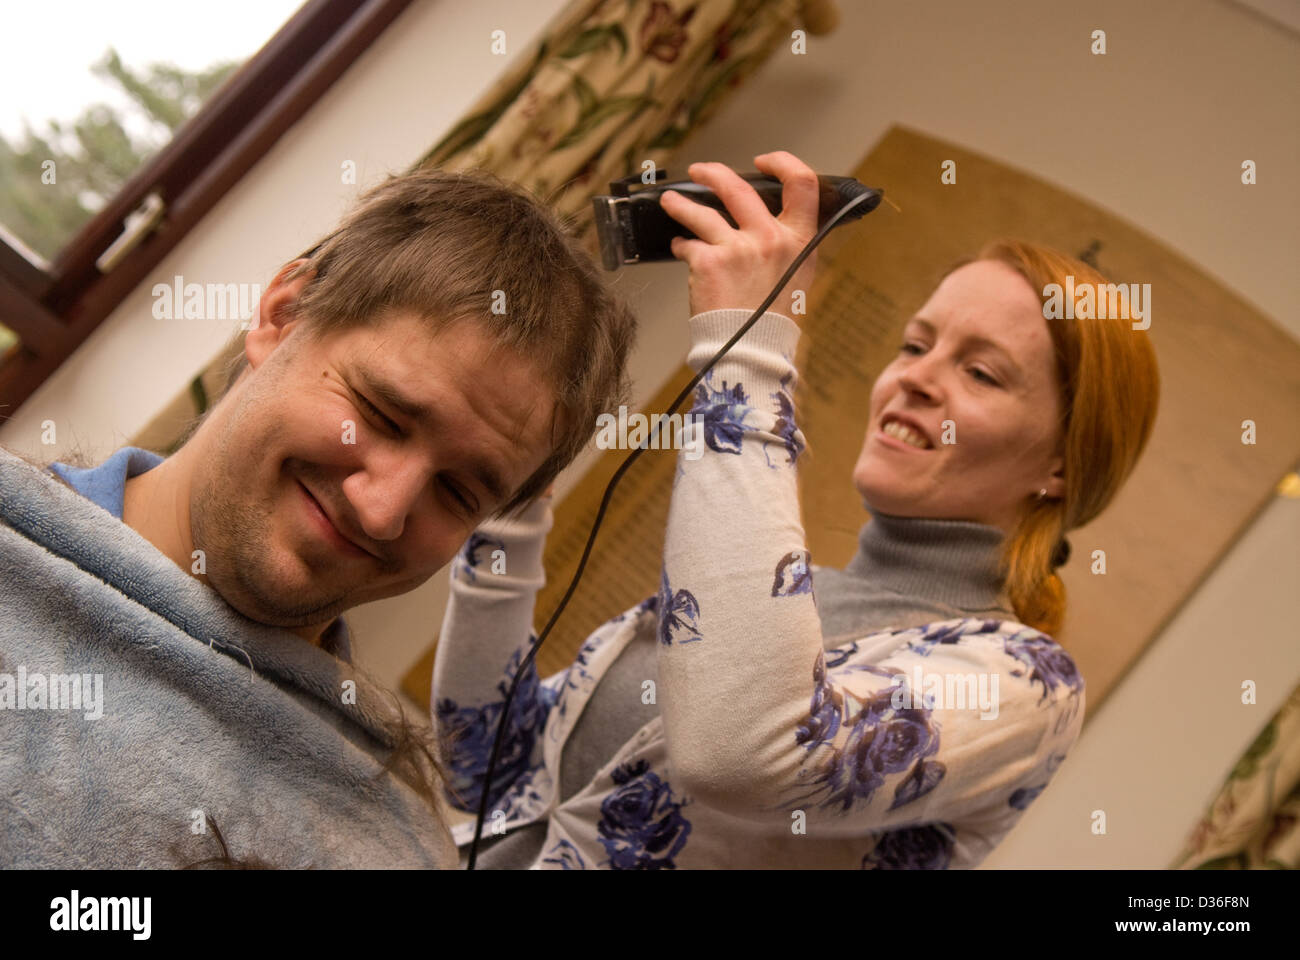 26 year old man in process of having all his hair shaved off for a cancer charity, Bordon, Hampshire, UK. Stock Photo